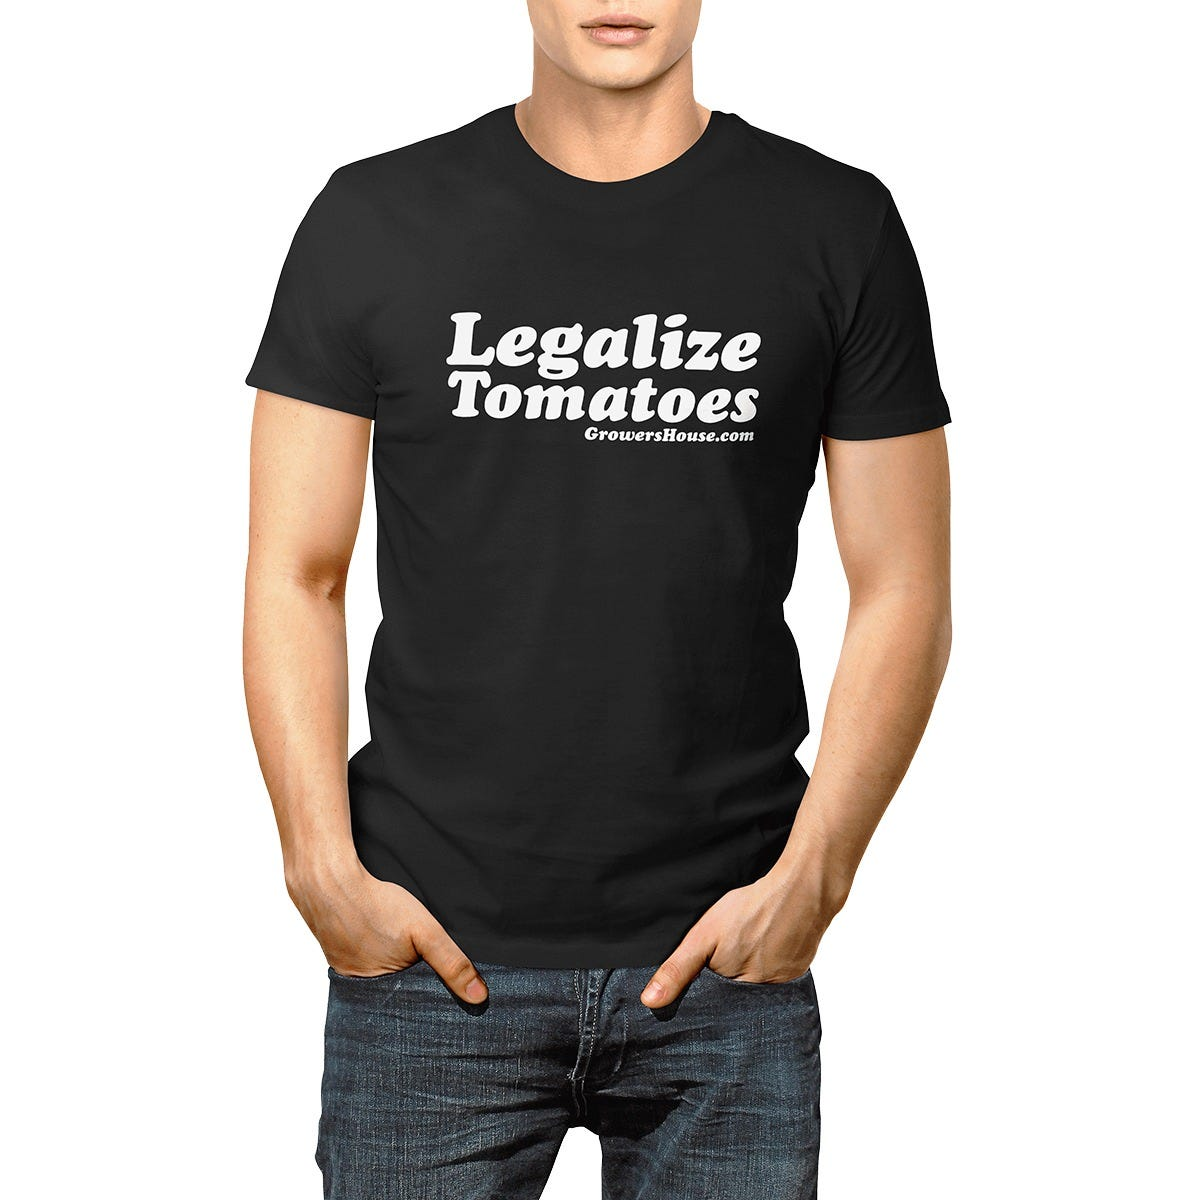 Growers House Legalize Tomatoes T-Shirt - White on Black Classic White on Black Show your One Love, for Tomatoes! Make a statement with out saying... so many words. Represent the fruits of your labors while practicing on those tomato plants with our Official Growers House  Legalize Tomatoes  T-Shirt! Quality screen printed on Next Level Apparel, Premium Jersey, soft brushed, 60% Cotton 40% Polyester, Our guys say this is a  Classic Fit  style Tee. We shelled out for really nice premium jersey, its soft not like a cheap giveaway shirt. It is cut like a  Classic Fit  tee shirt, not boxy or oversized, and not  fitted . A very true to size shirt. If you like a looser fit we recommend you order the next size up. Check out the GH Teespring Store for even more color options and Woman's fit tees!